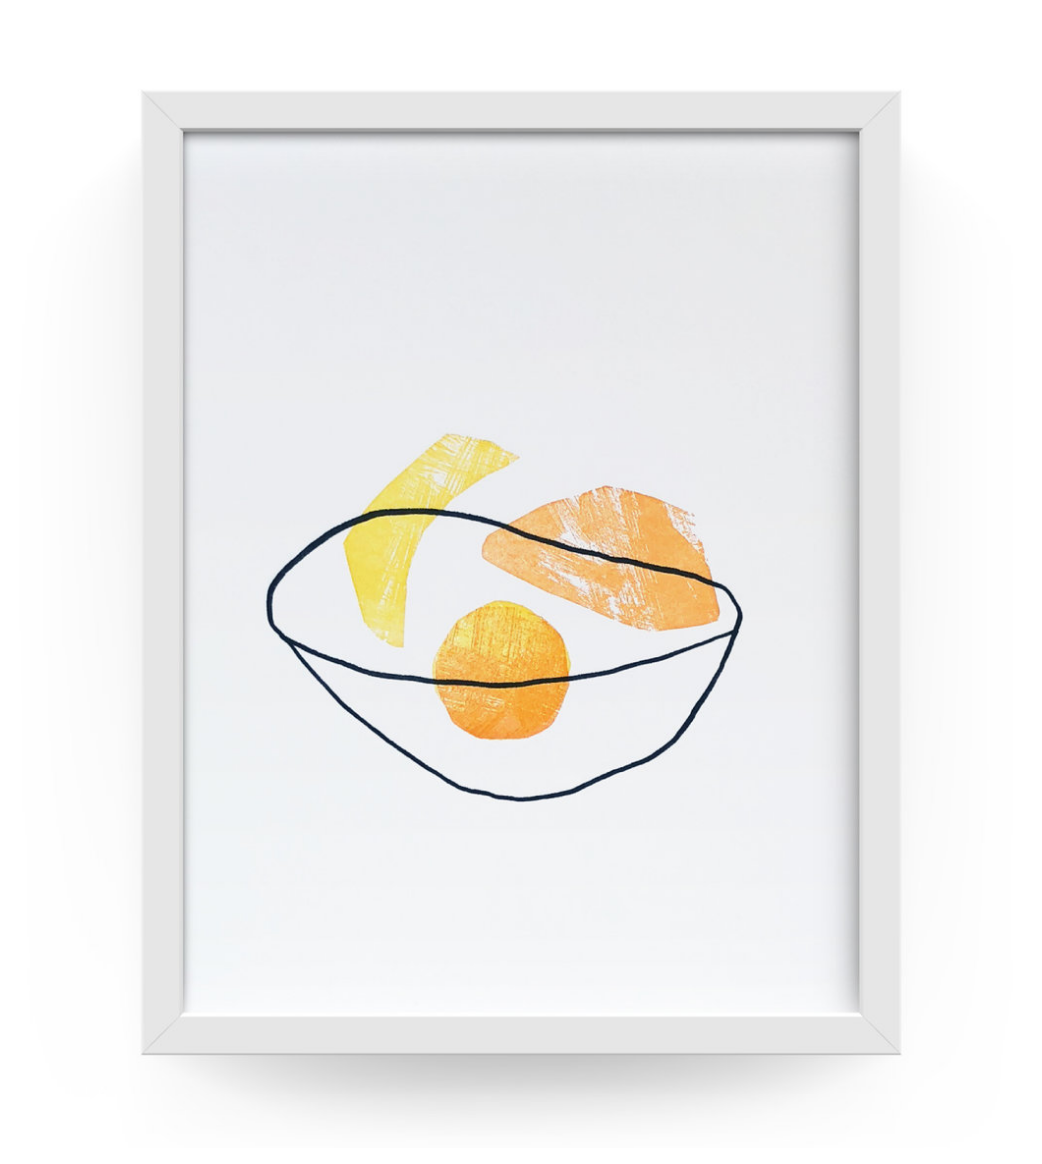 Fruit Bowl Letterpress Print